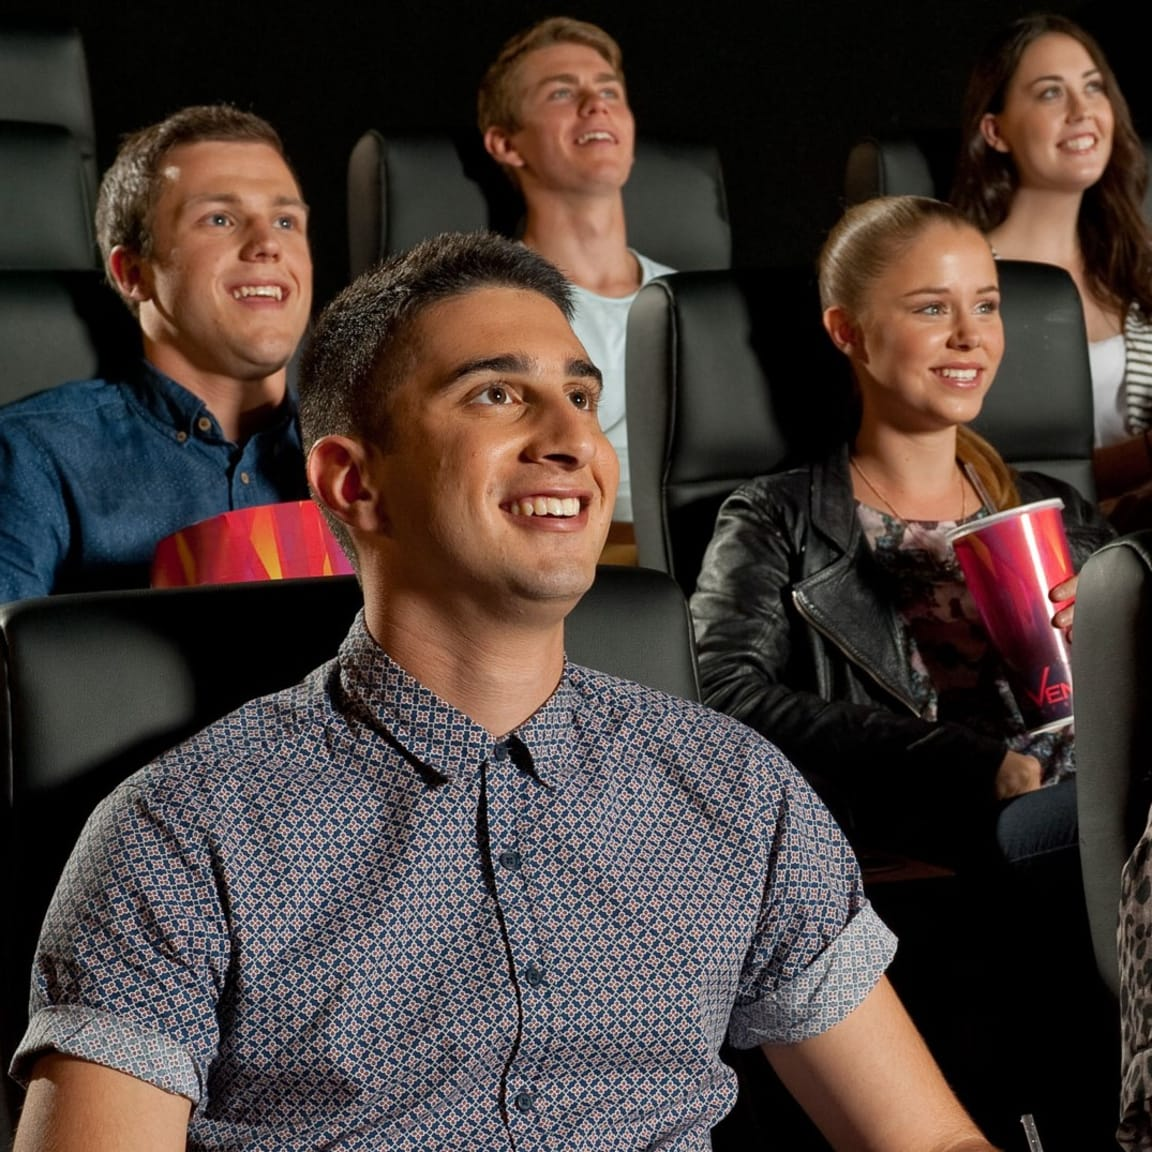 Mondays just got better with $8 student tickets at Event Cinemas